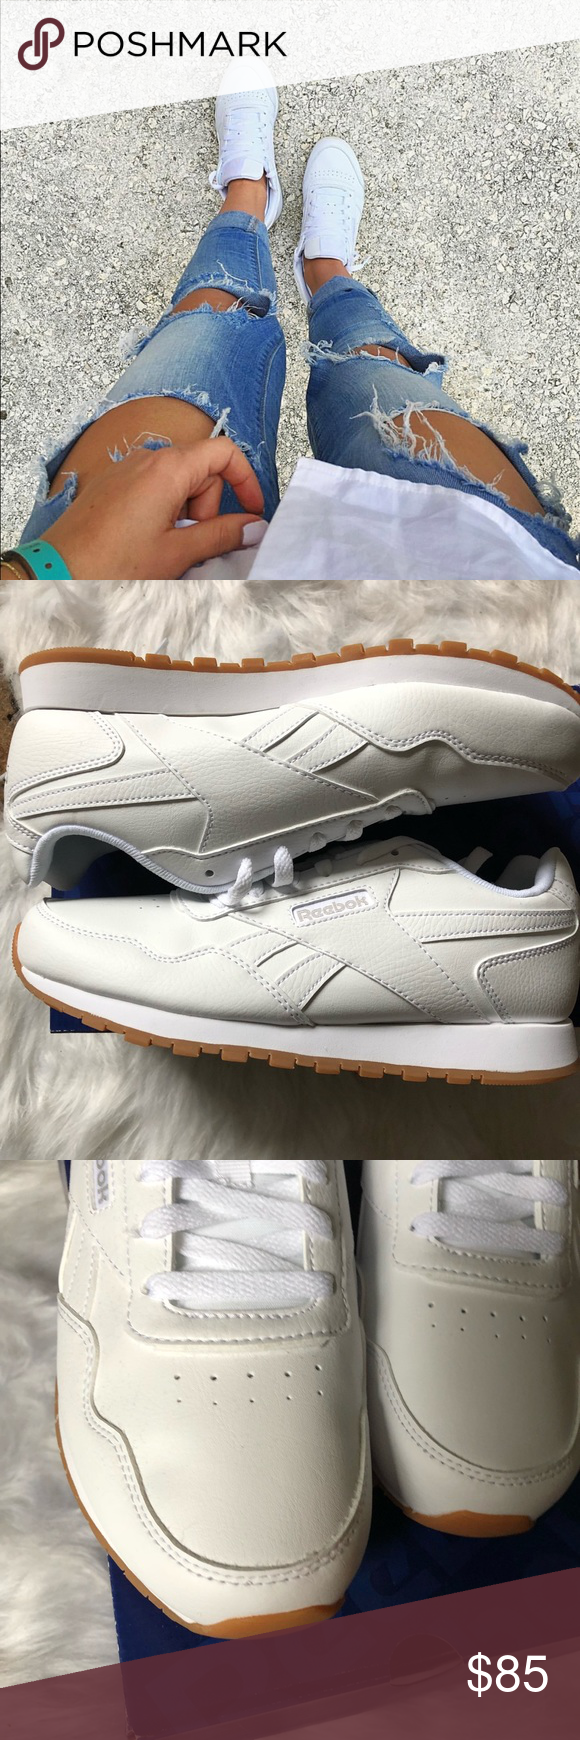 7ae8cac7c6780 Reebok classic Harman Run sneakers NWB! Brand new. Sole outer surface  100%  rubber. Lace-up. Upper outer surface area  100% suede leather.